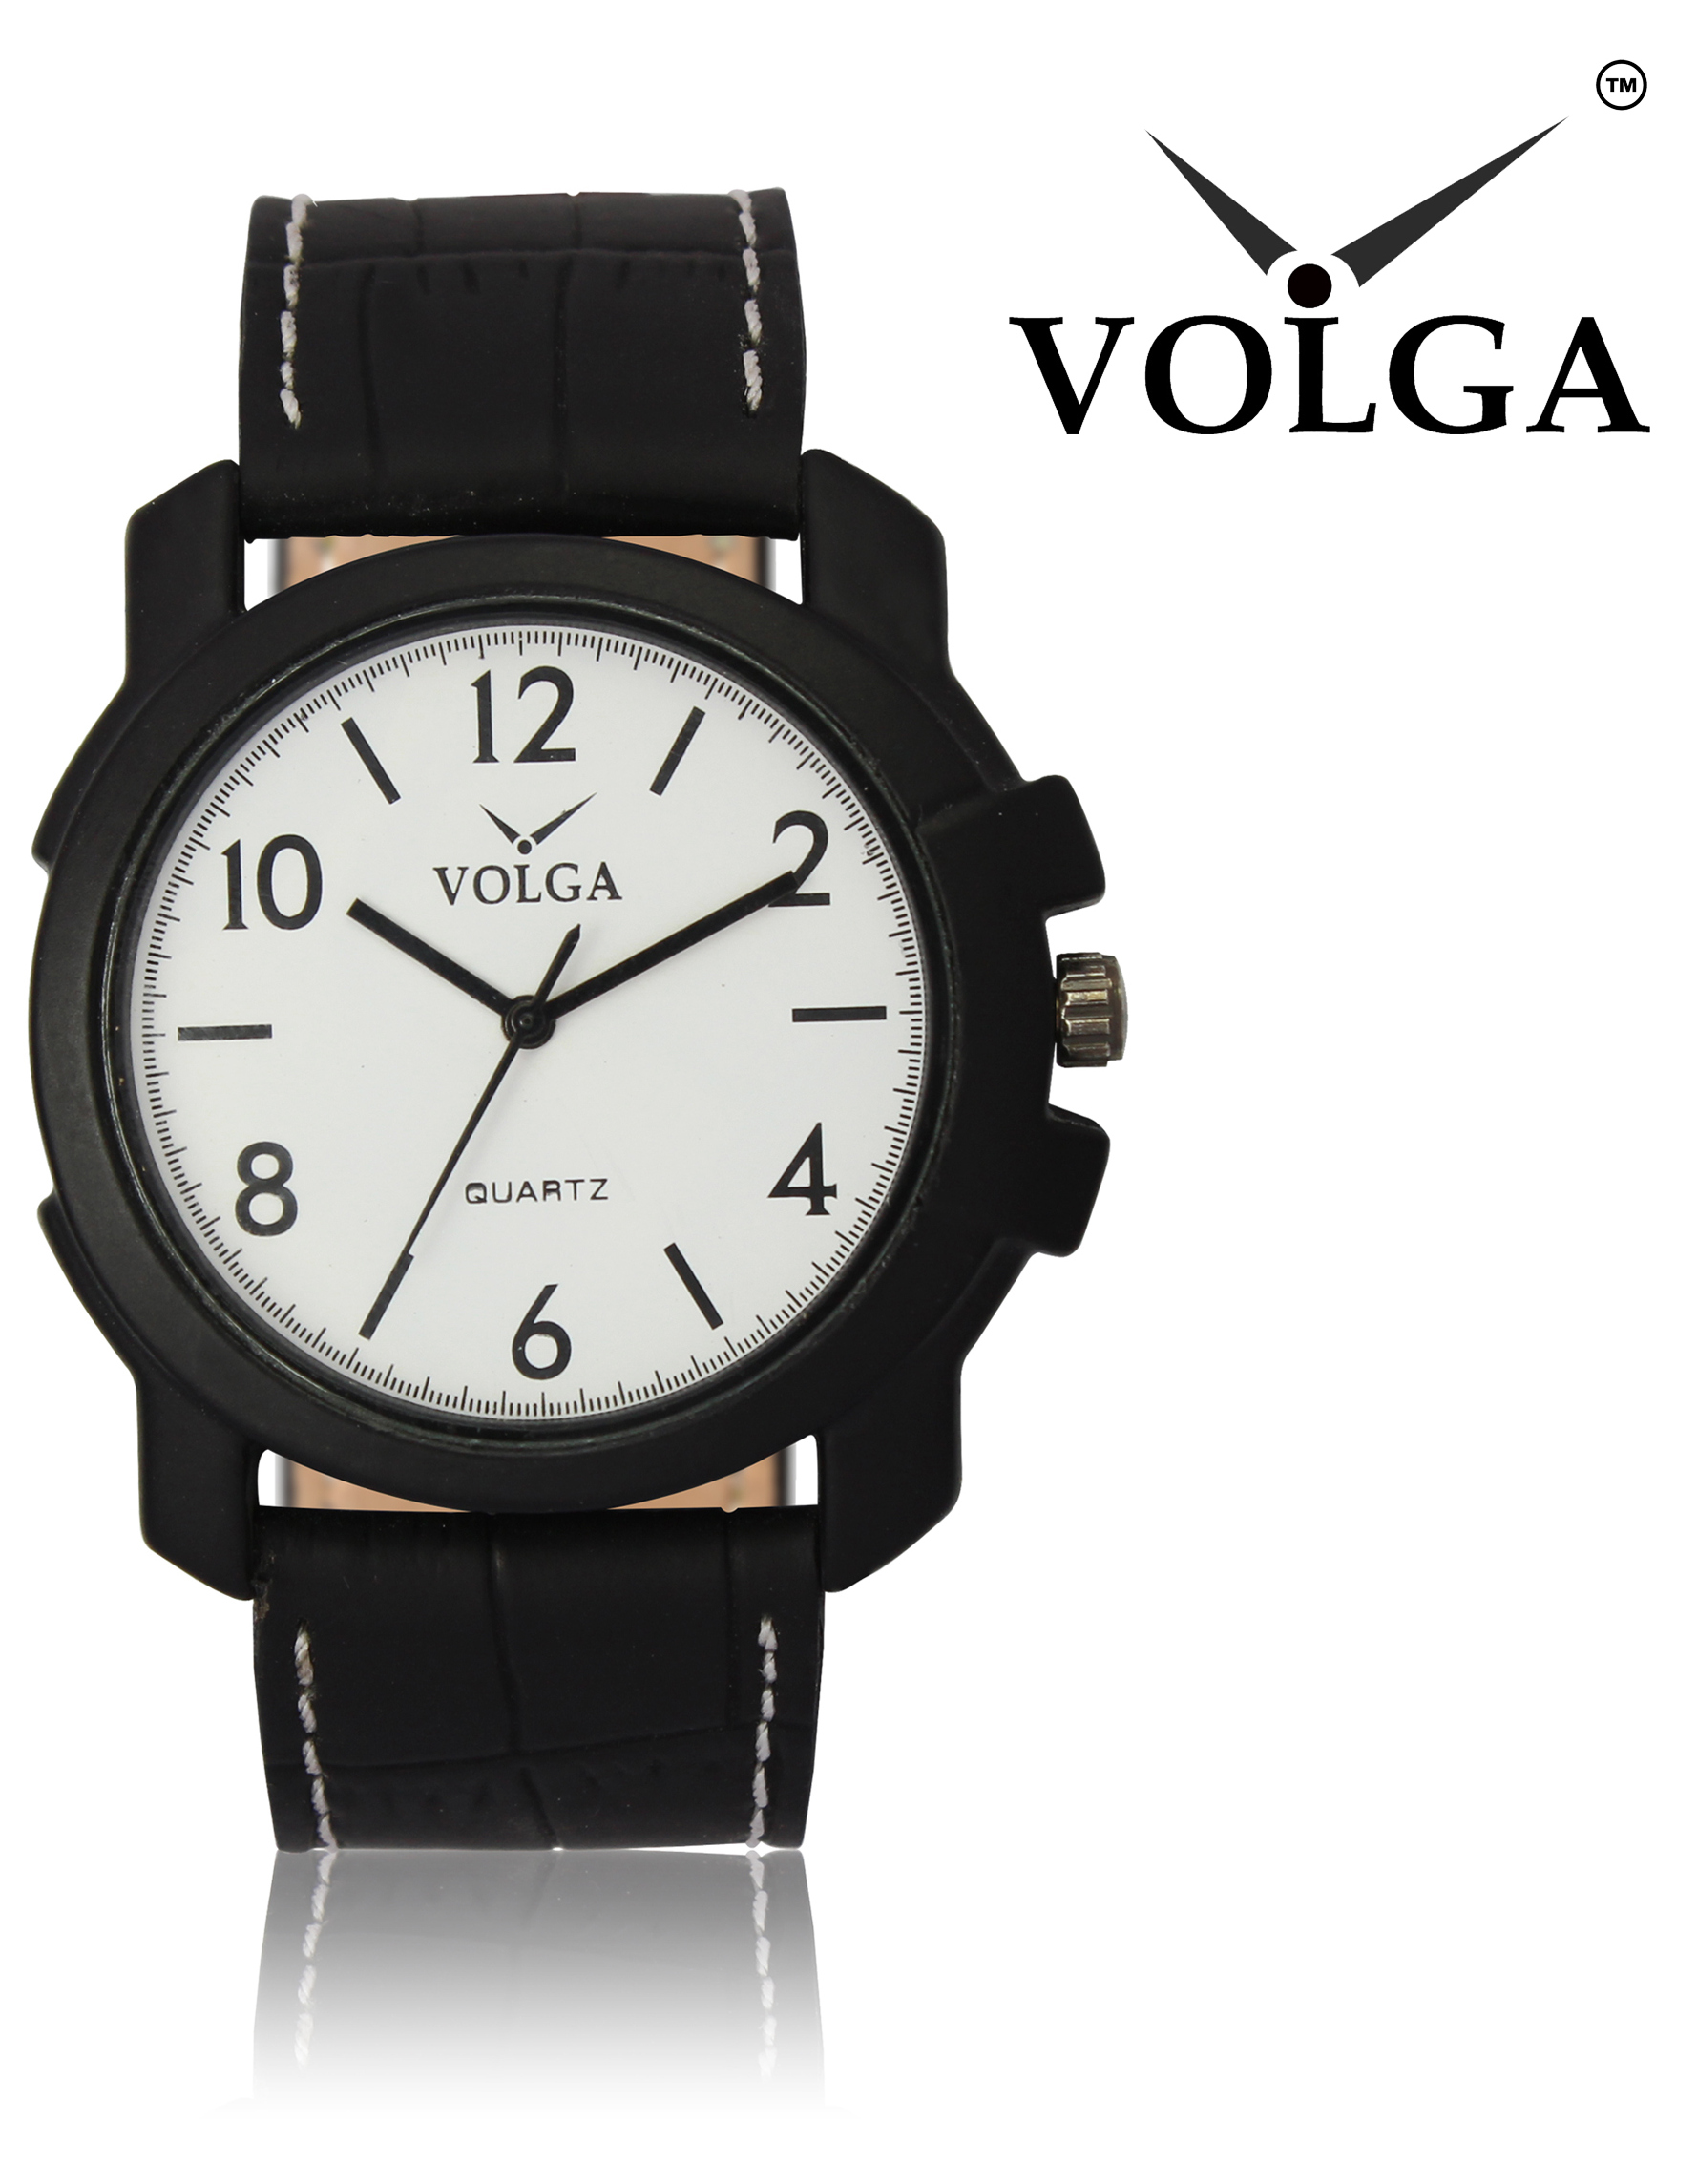 New Arrival Stylish And Professional Analogue White Dial And Black Leather Belt Special Volga Watch For Boys And Men